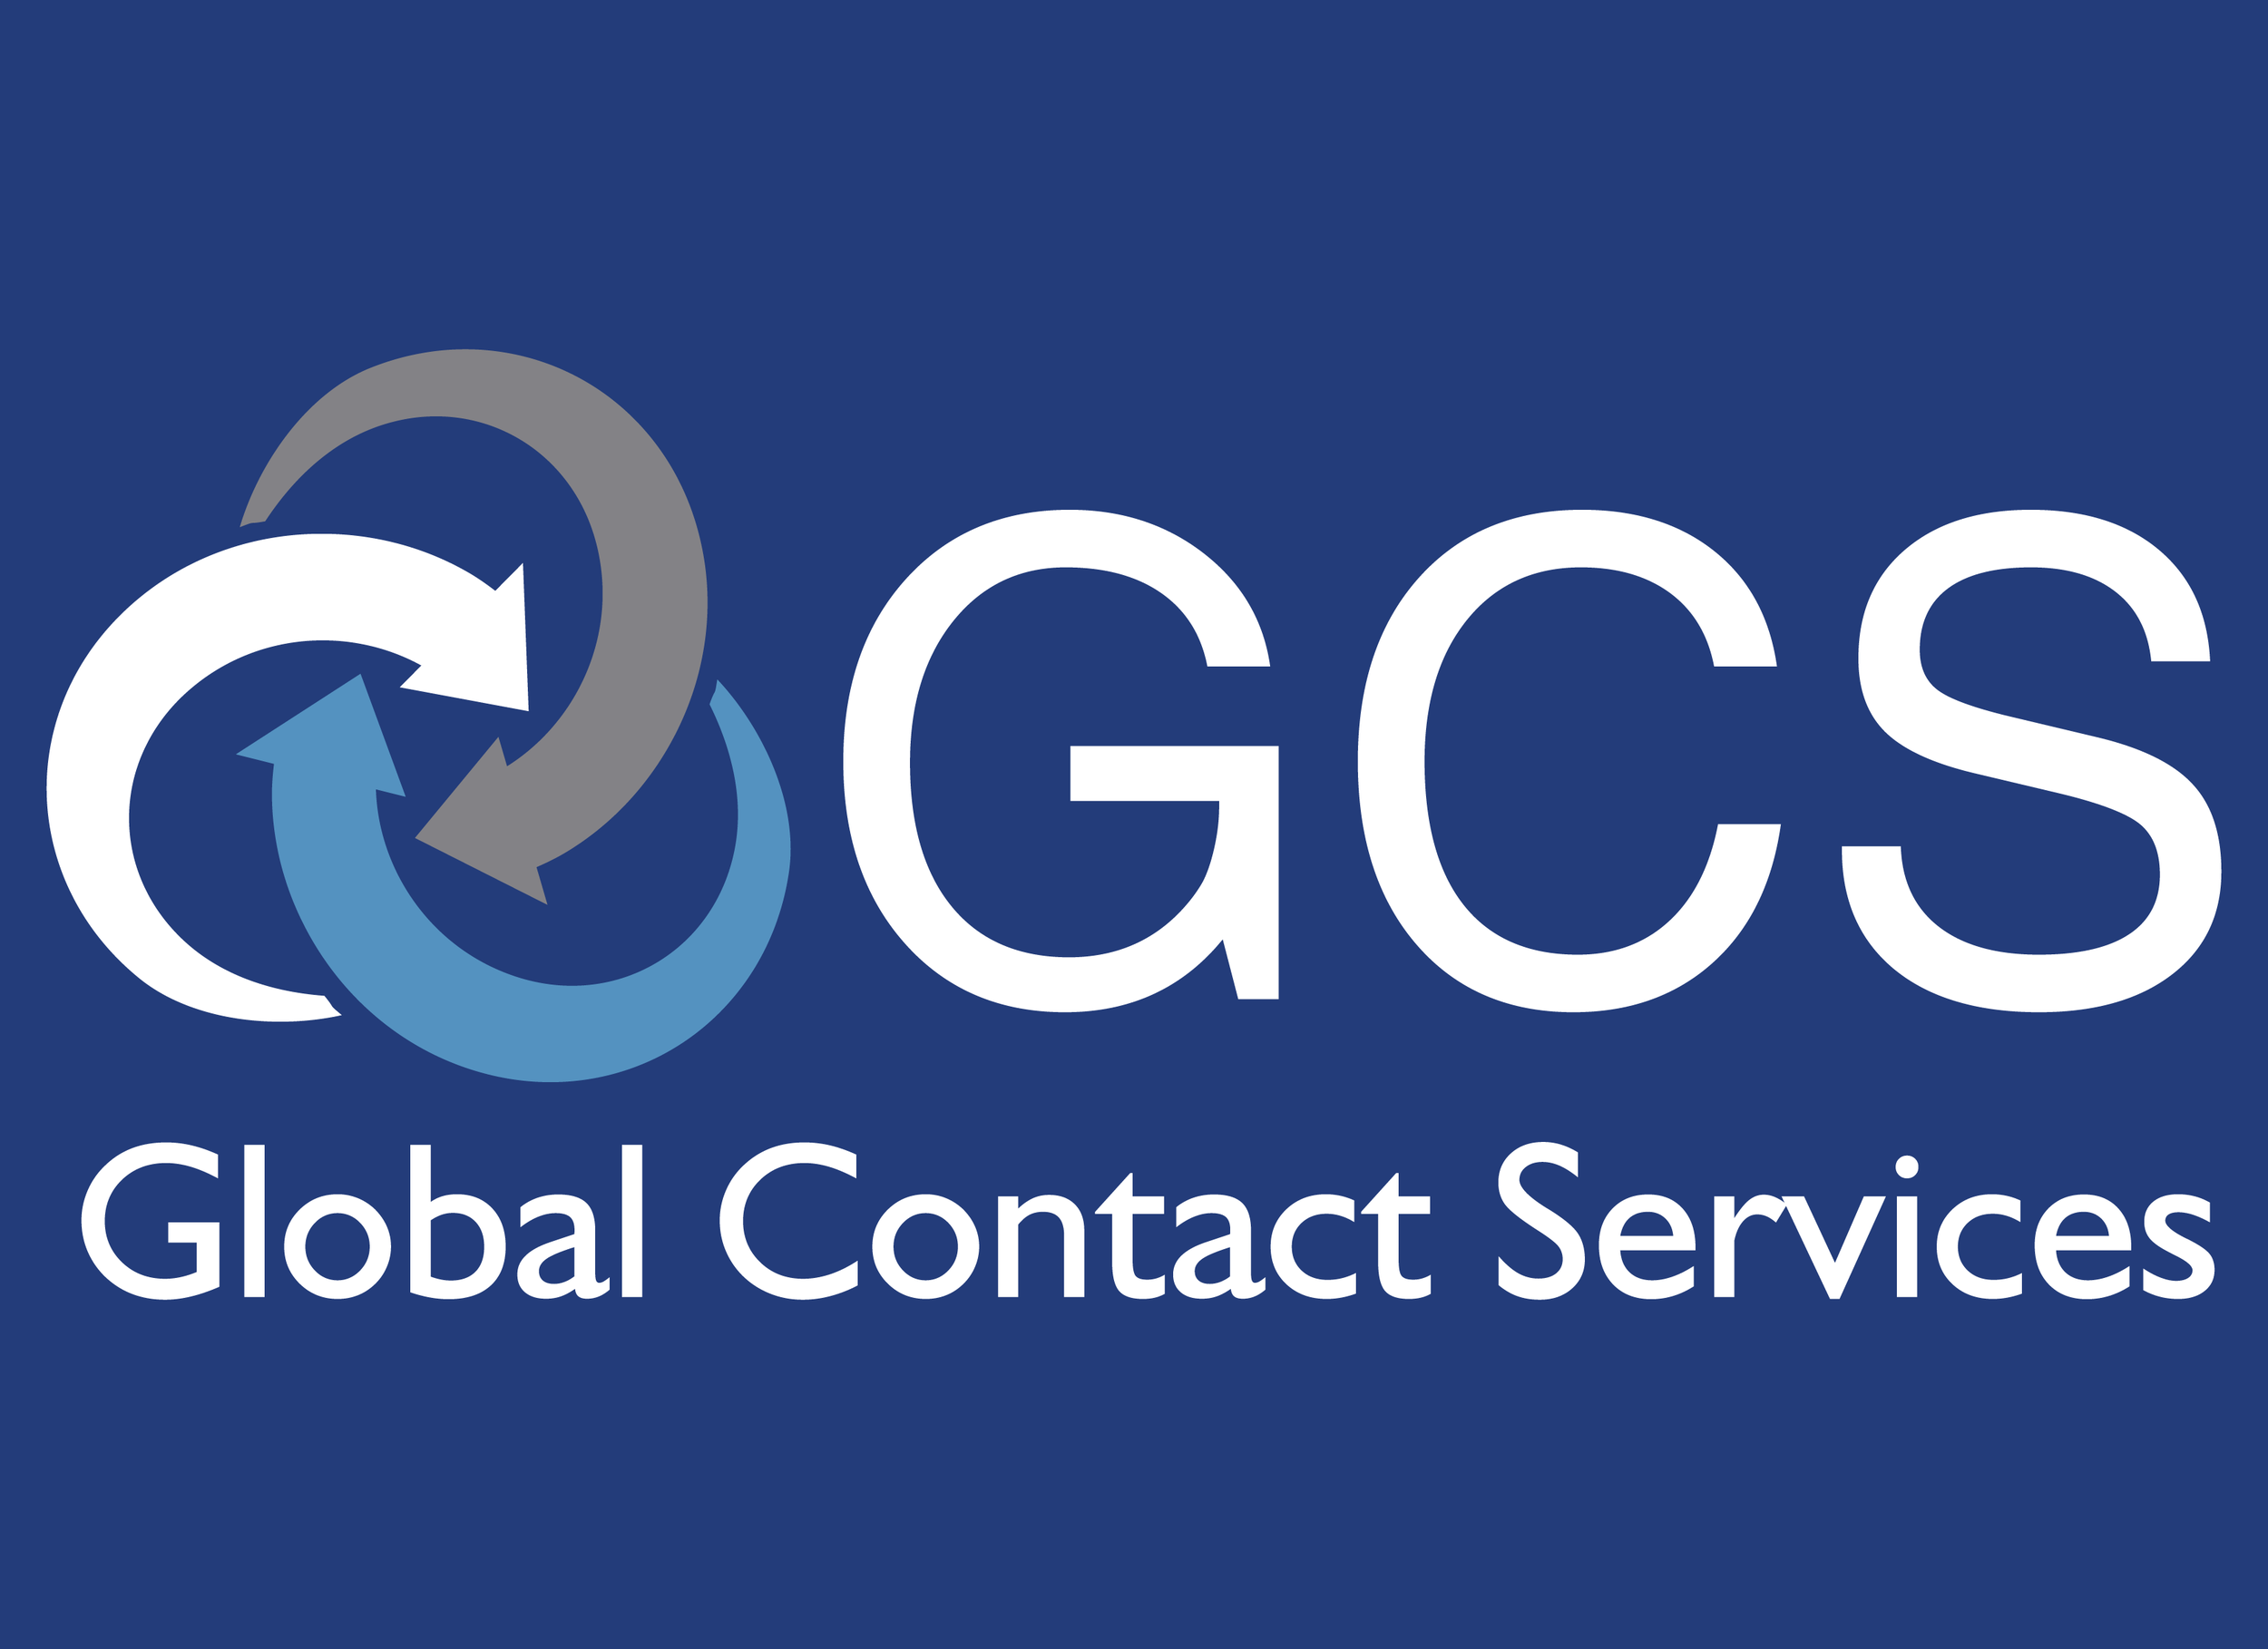 GCS_Global Contact Services_Logo_drk bkgrd.png